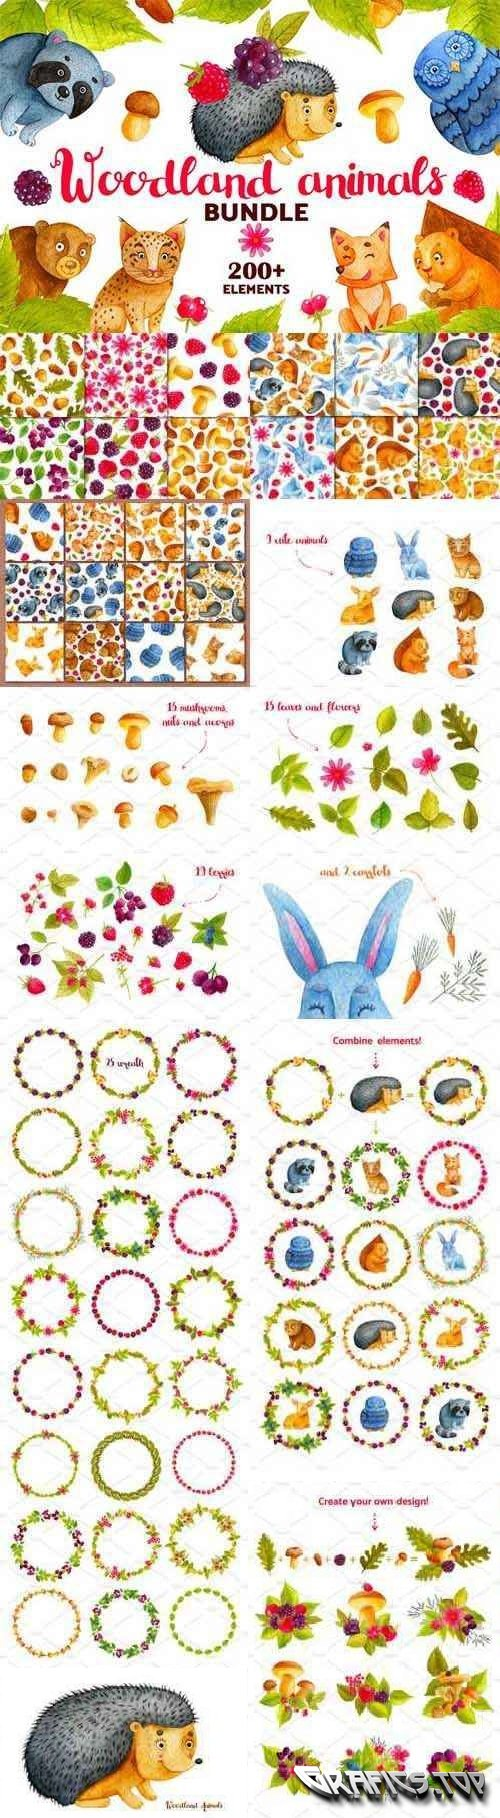 Woodland Animals. Watercolor Bundle - 2052332